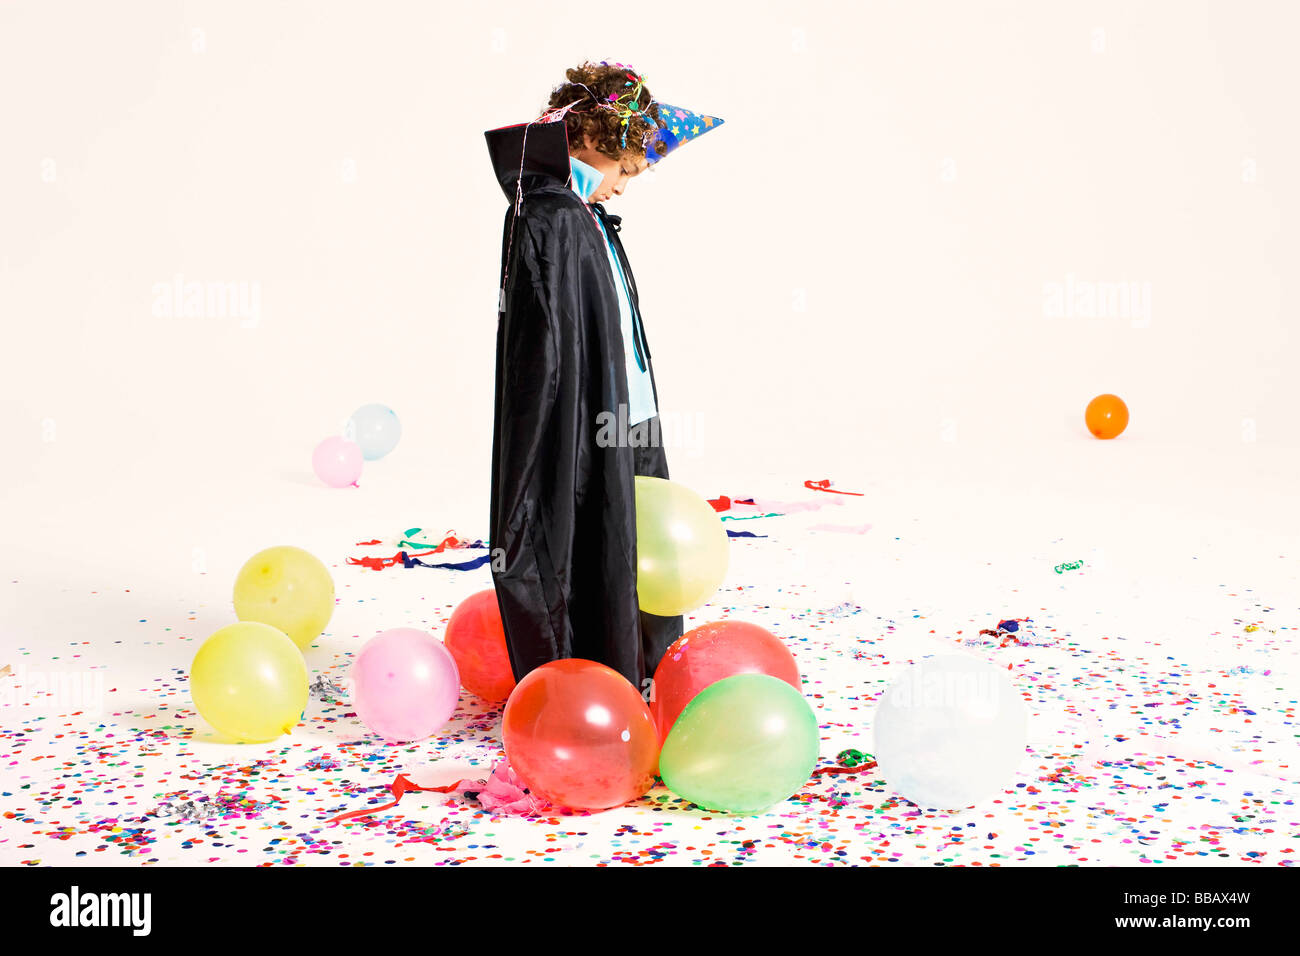 sad boy in party costume - Stock Image